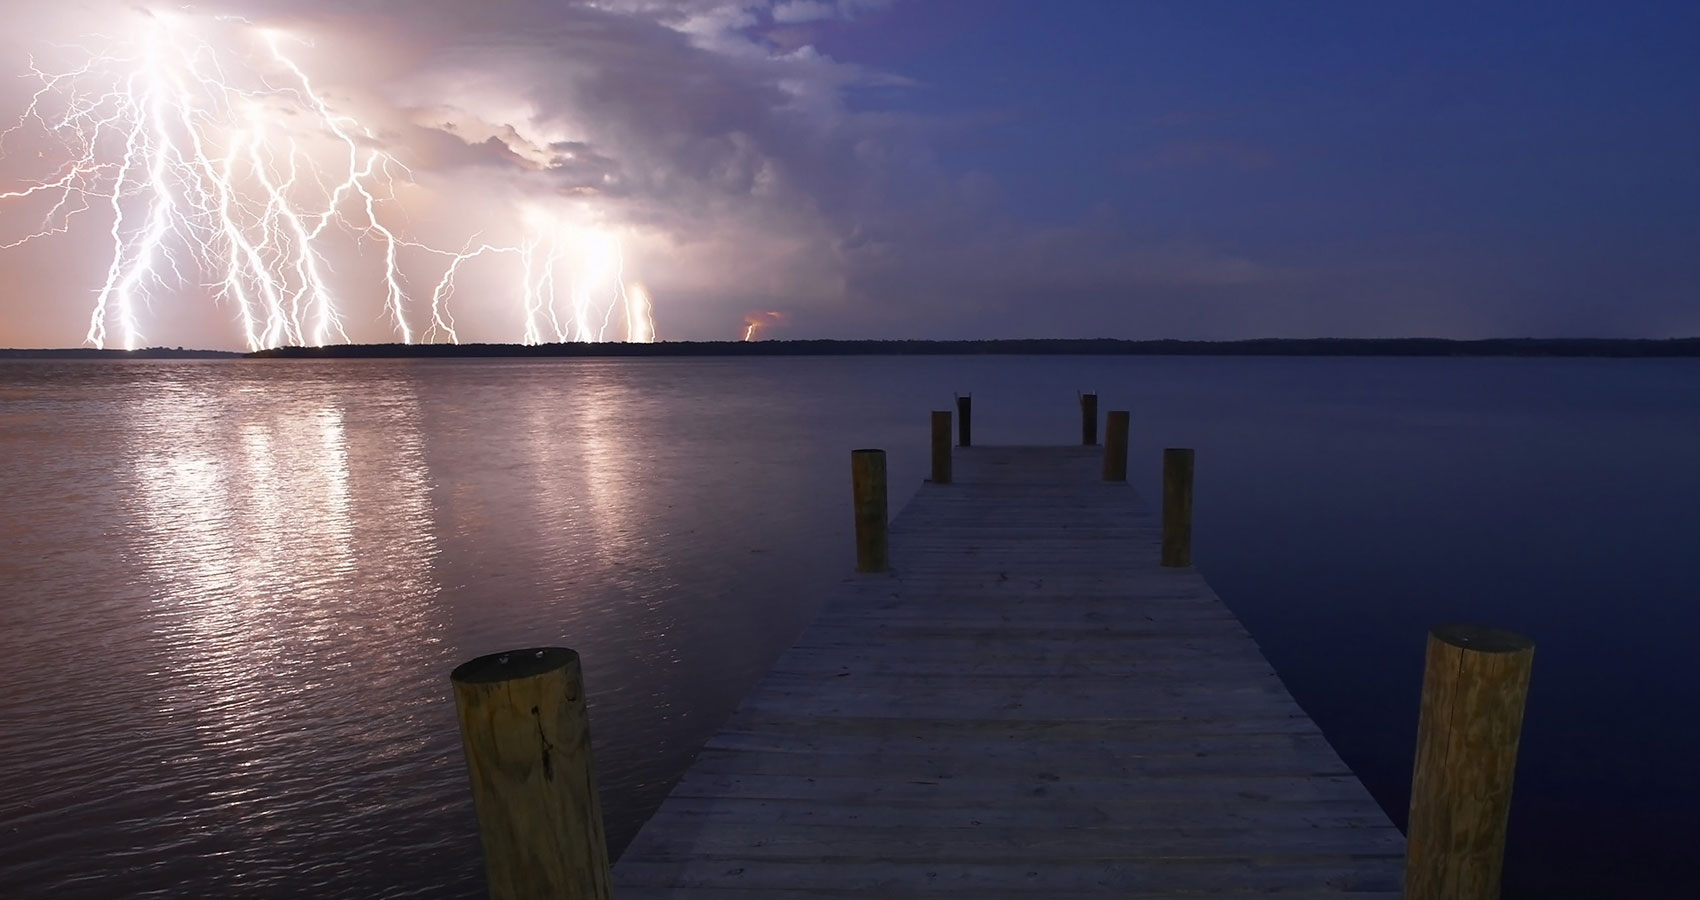 Perfect Storm by Leanne Yeoman at Spillwords.com